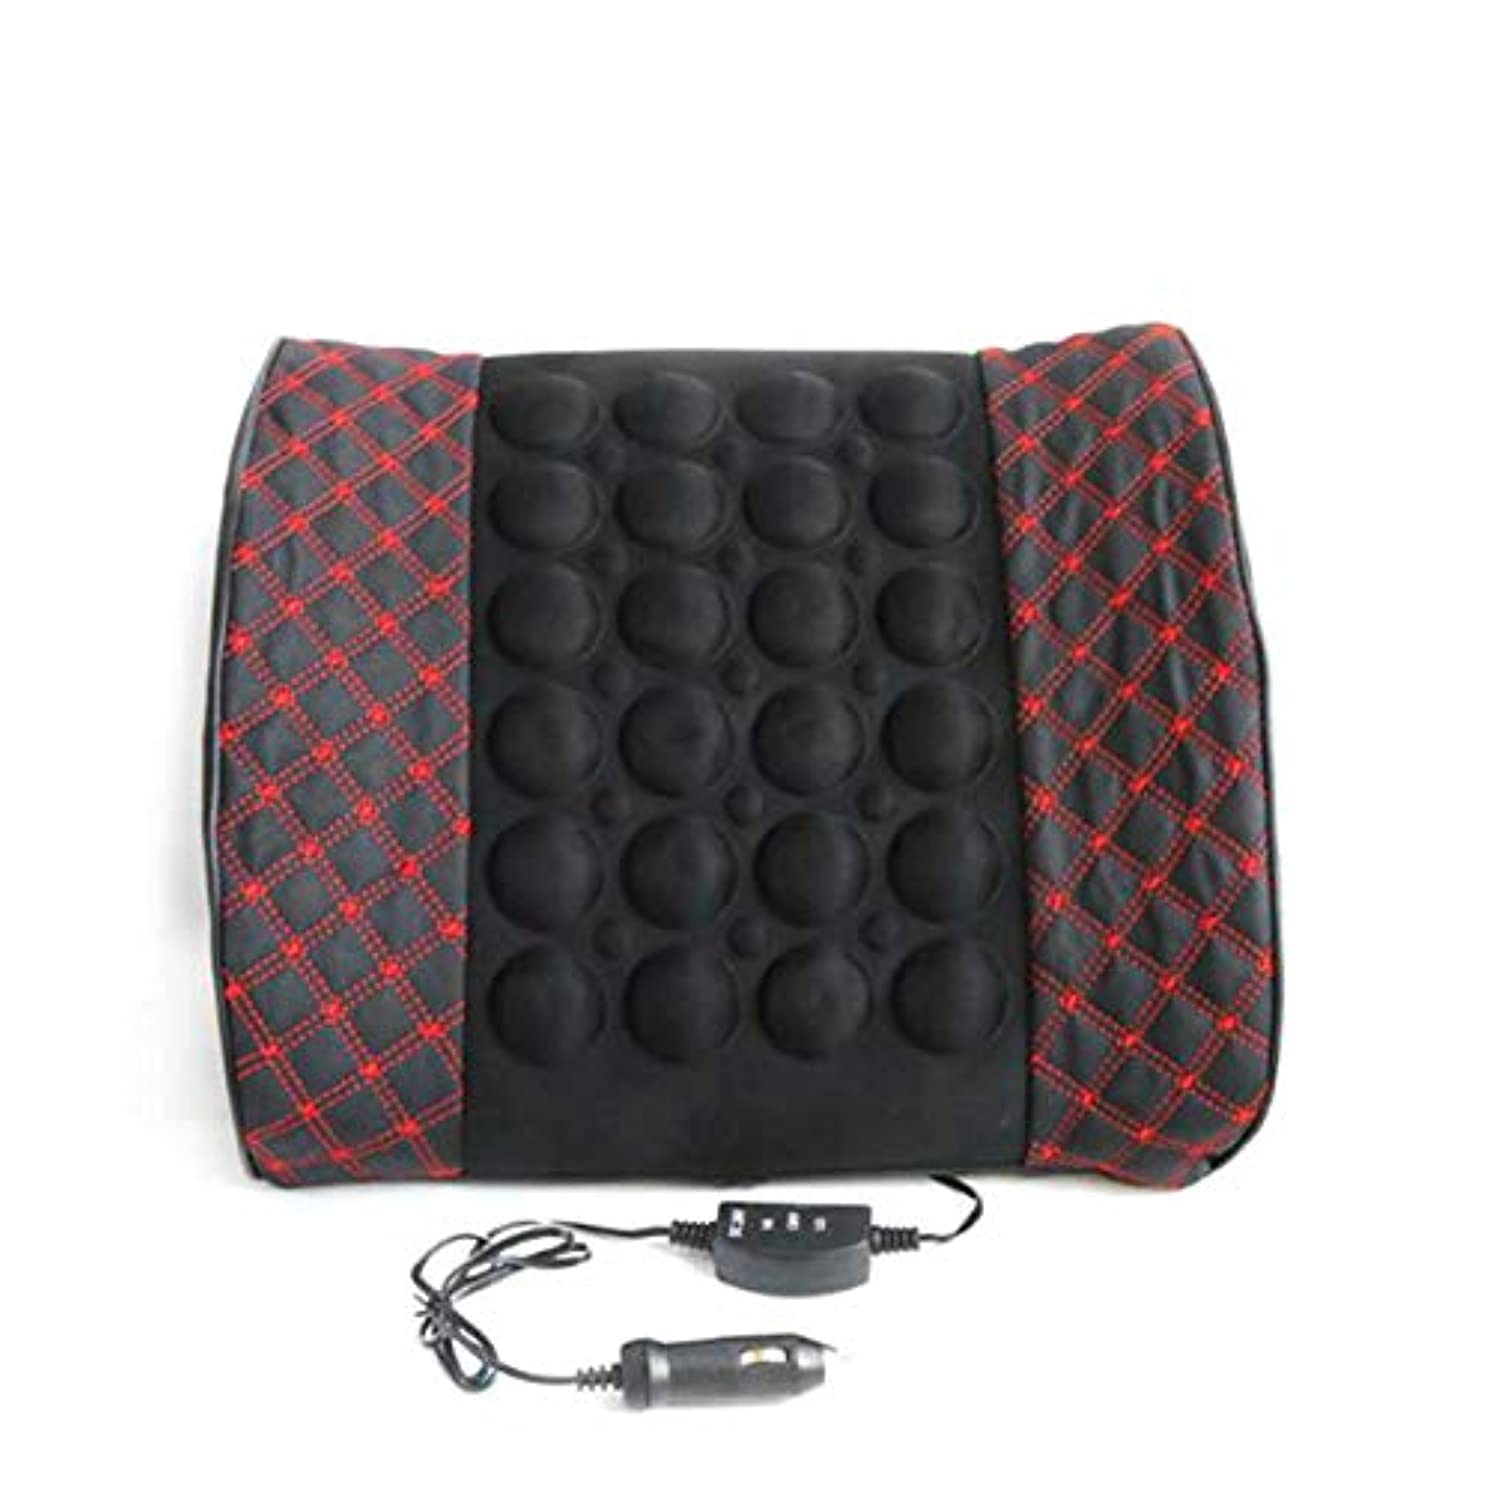 Microfiber Leather Car Back Support Lumbar Posture Support Breathable Electrical Massage Cushion Health Care Tool